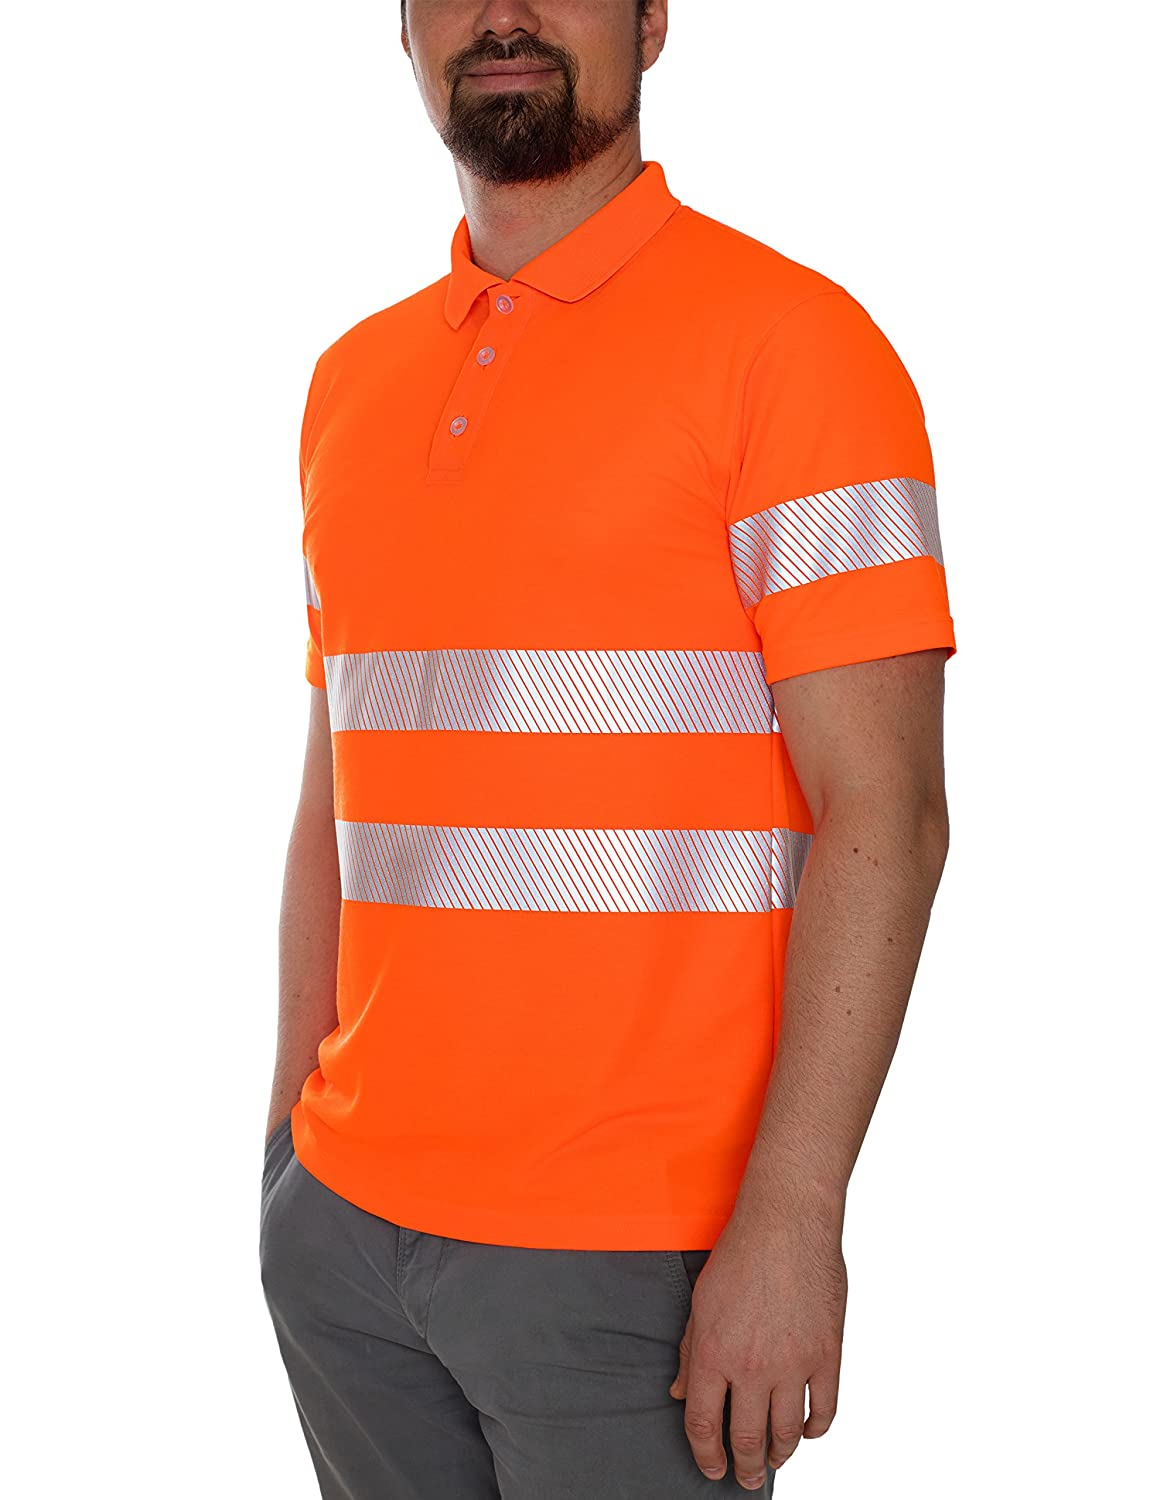 IQ de UV w5150024260 - 56 Protección UV XXL 50 Plus Polo Camiseta ...